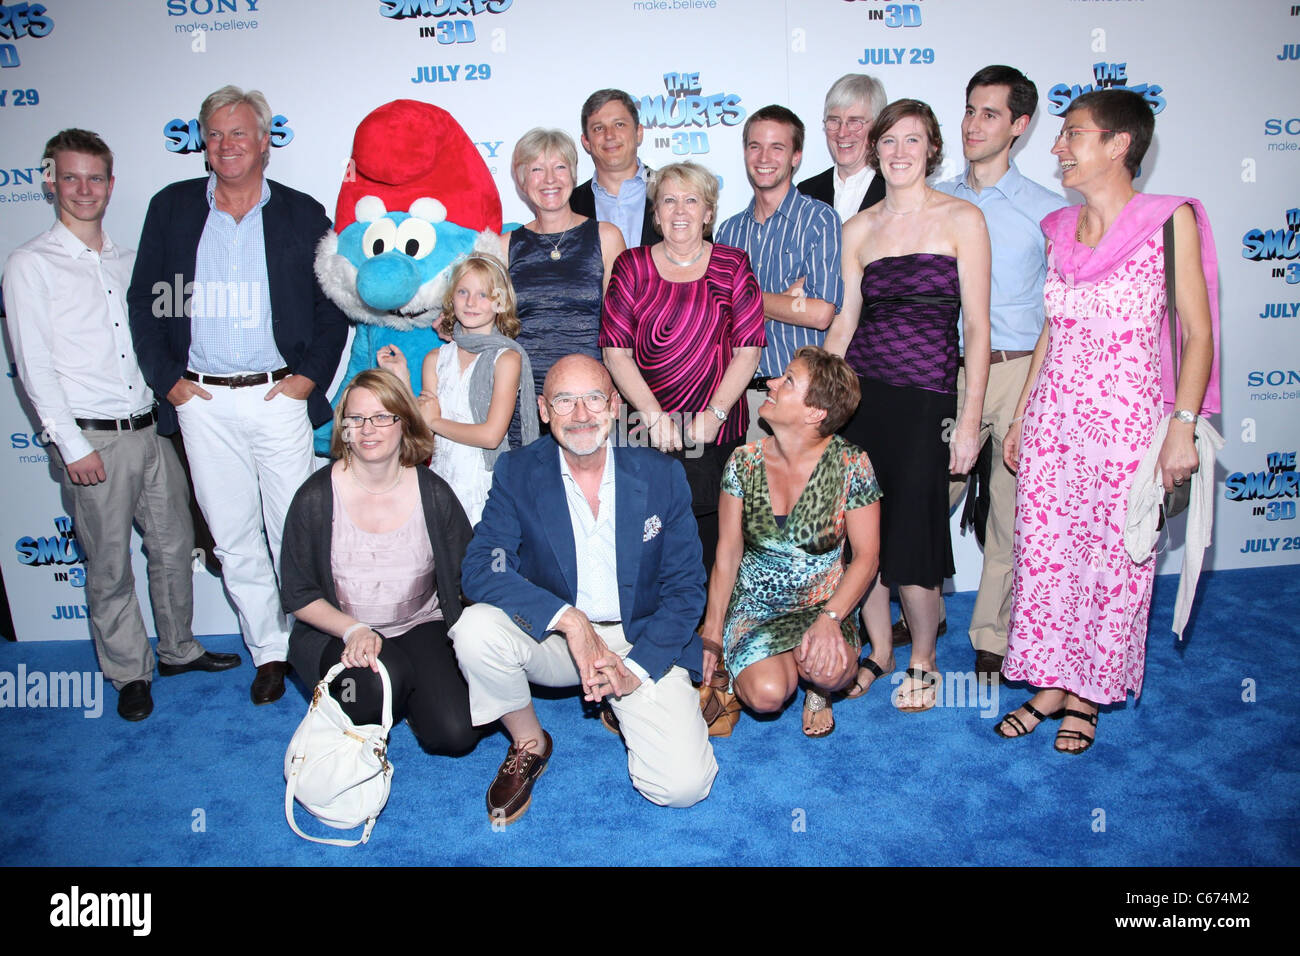 Veronique Culliford and guests at arrivals for THE SMURFS Premiere, The Ziegfeld Theatre, New York, NY July 24, - Stock Image